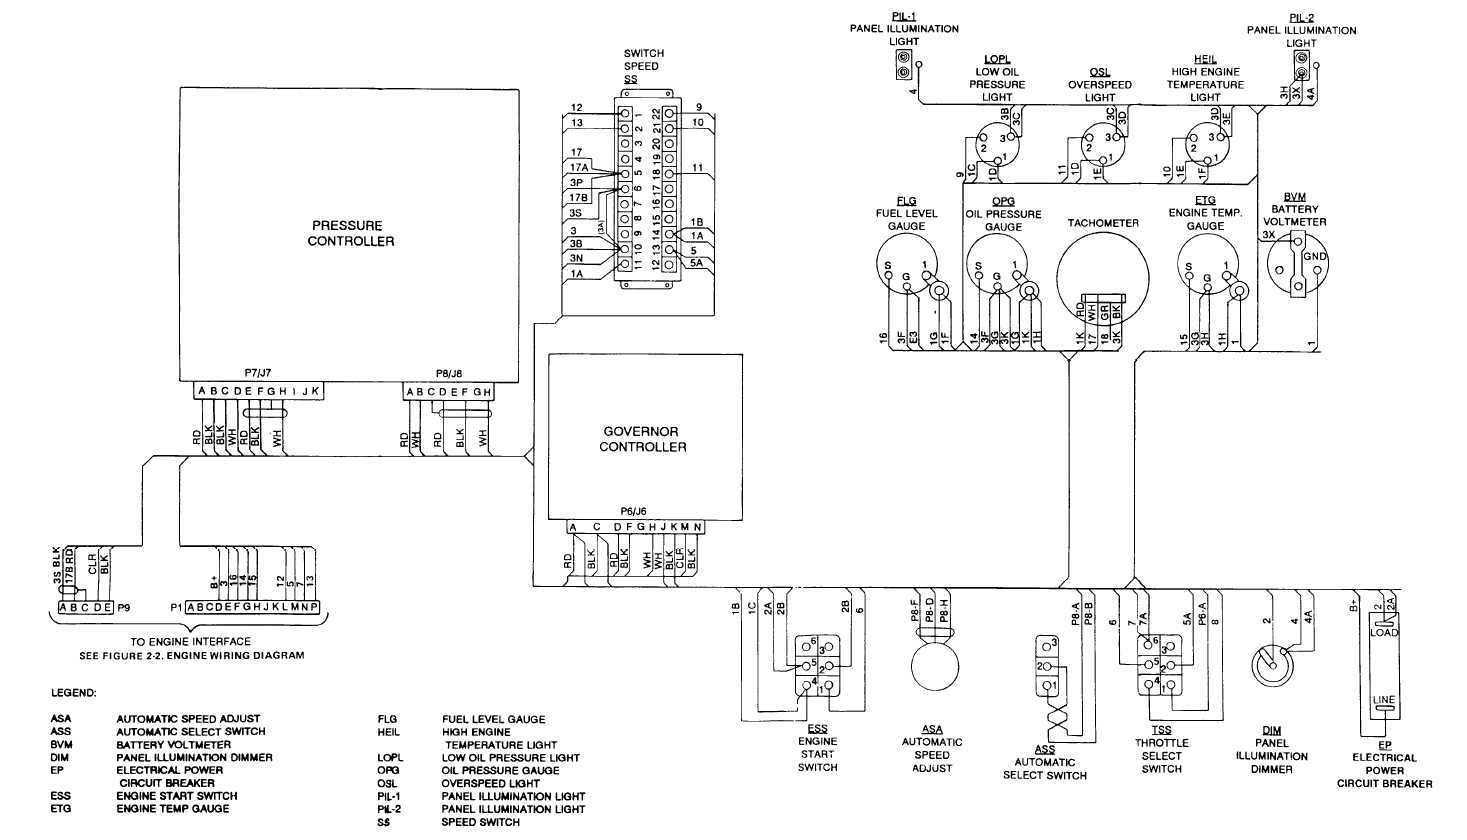 hight resolution of vfd control panel wiring diagram trusted wiring diagram rh 2 19 5 gartenmoebel rupp de vfd